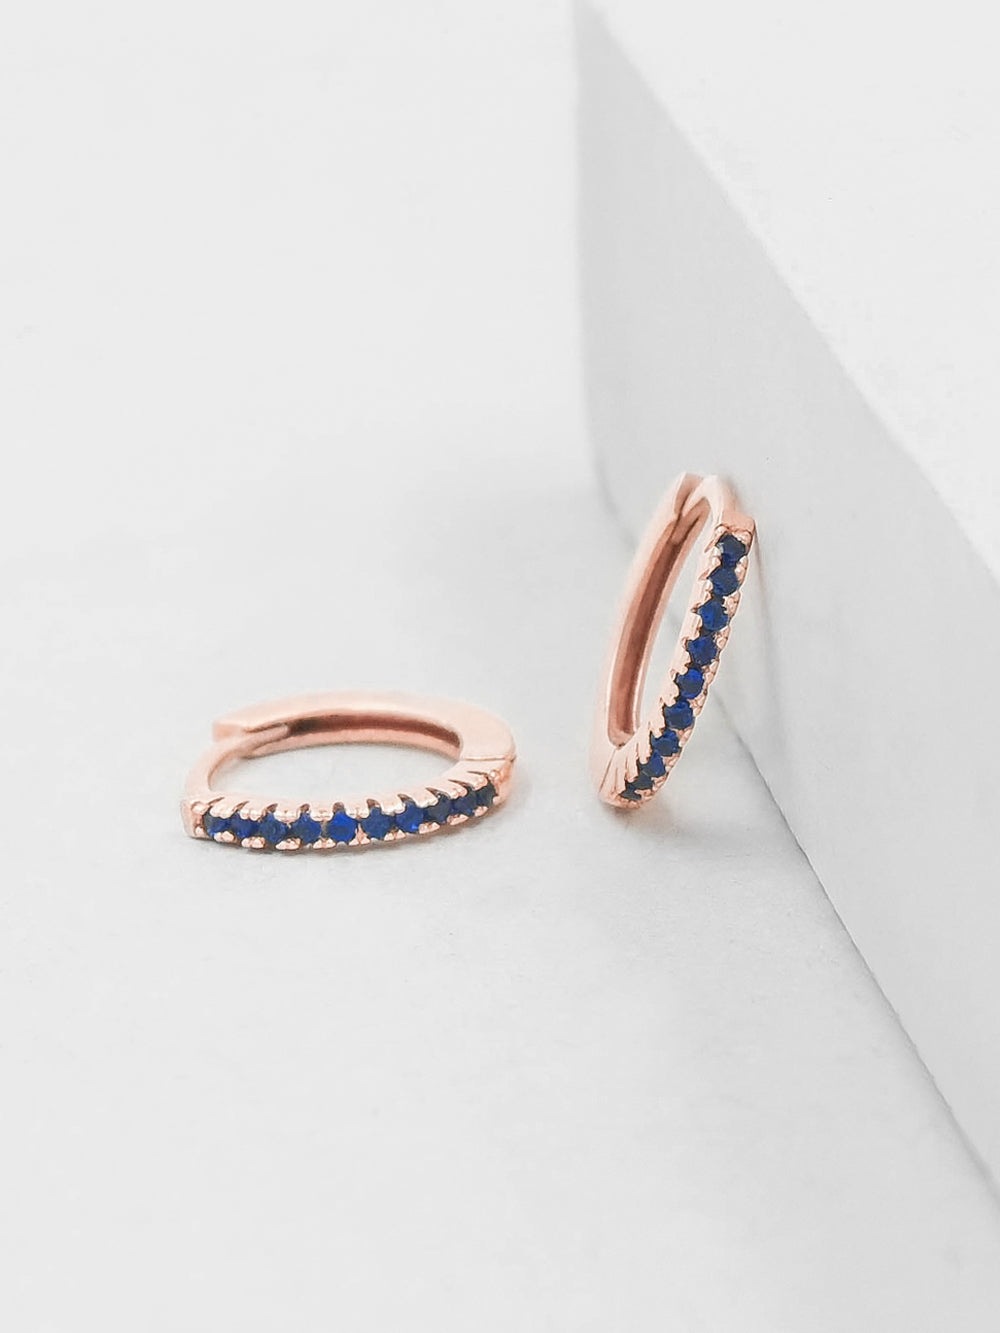 Rose gold plated Super Dainty Hoop Huggie Earrings with Tiny Blue Sapphire Round Cubic Zirconia by The Faint Hearted Jewelry